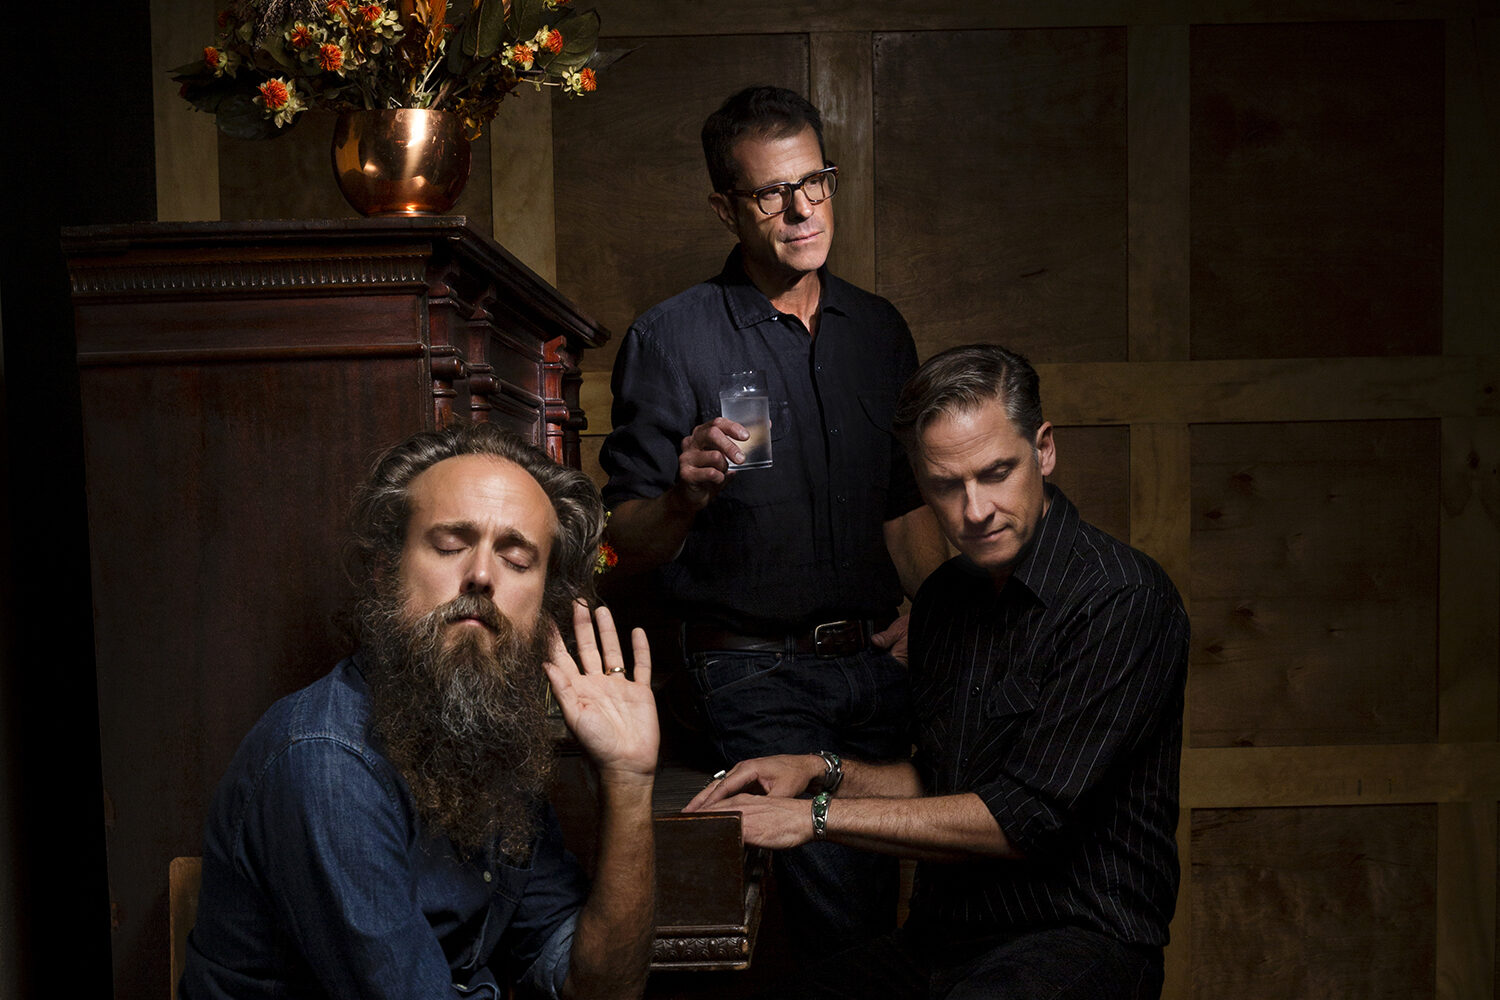 Calexico and Iron & Wine announce collaborative album 'Years To Burn'